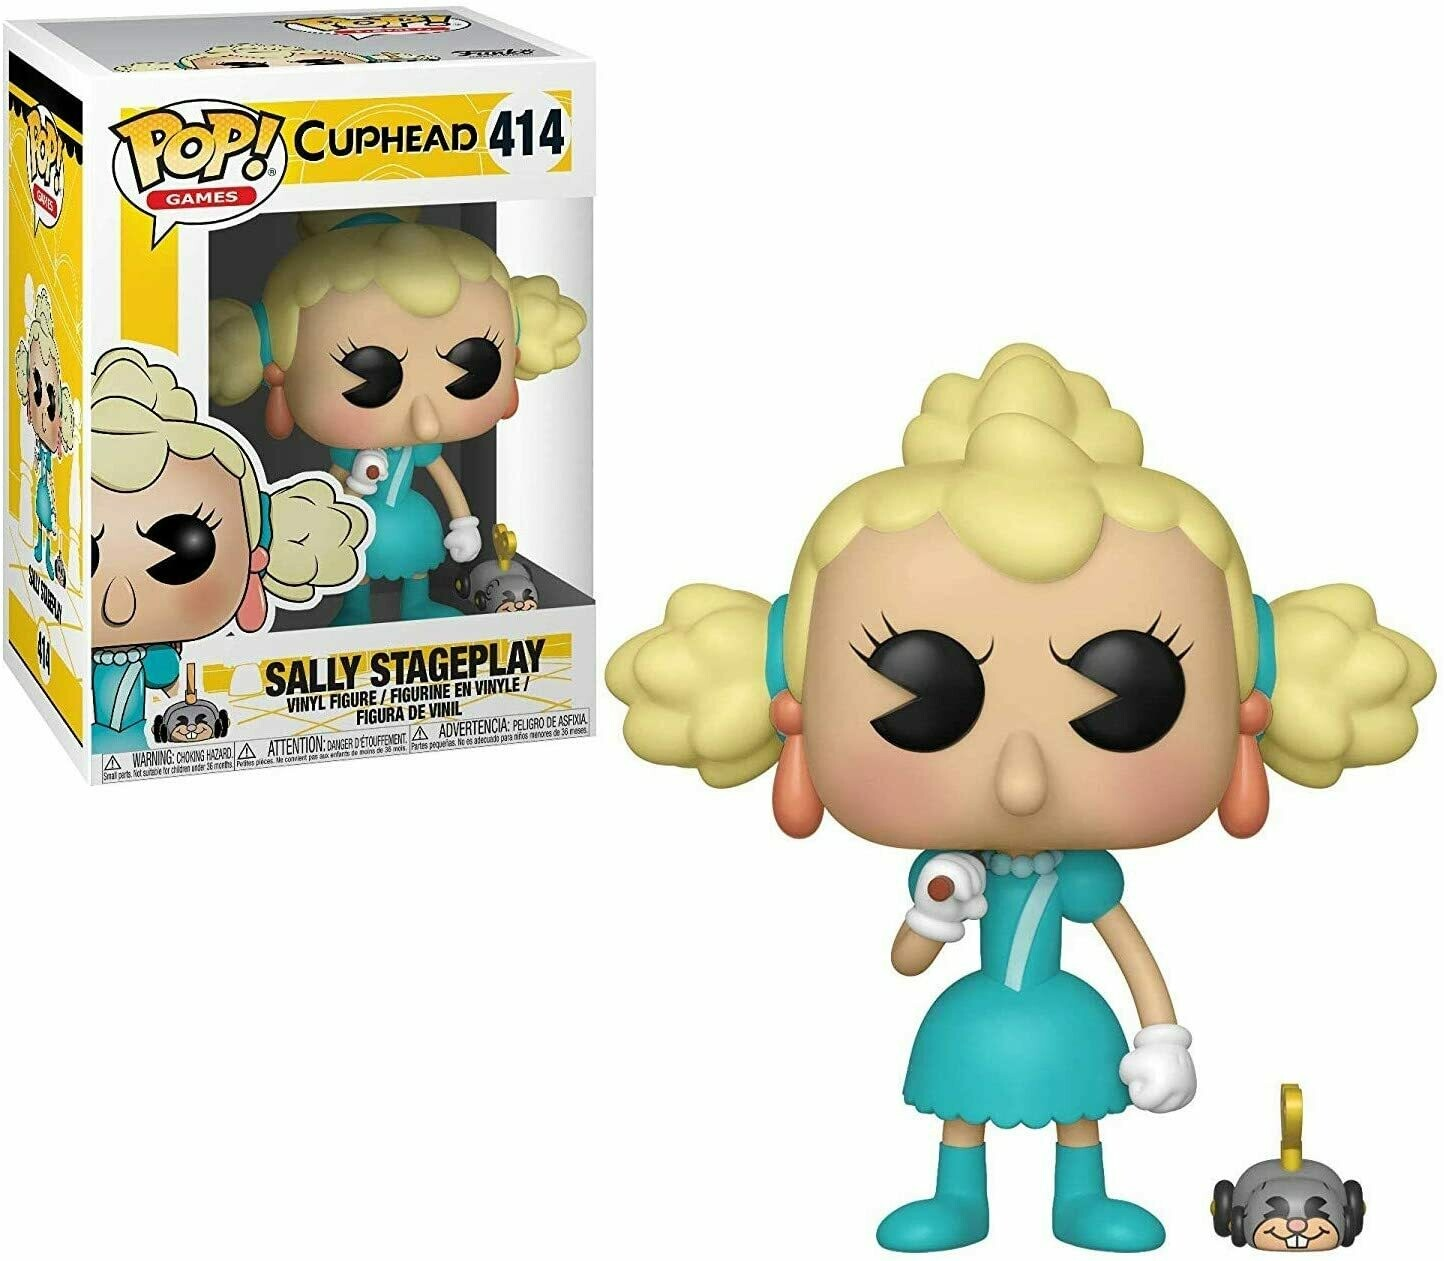 Funko Pop! Sally Stageplay Cuphead